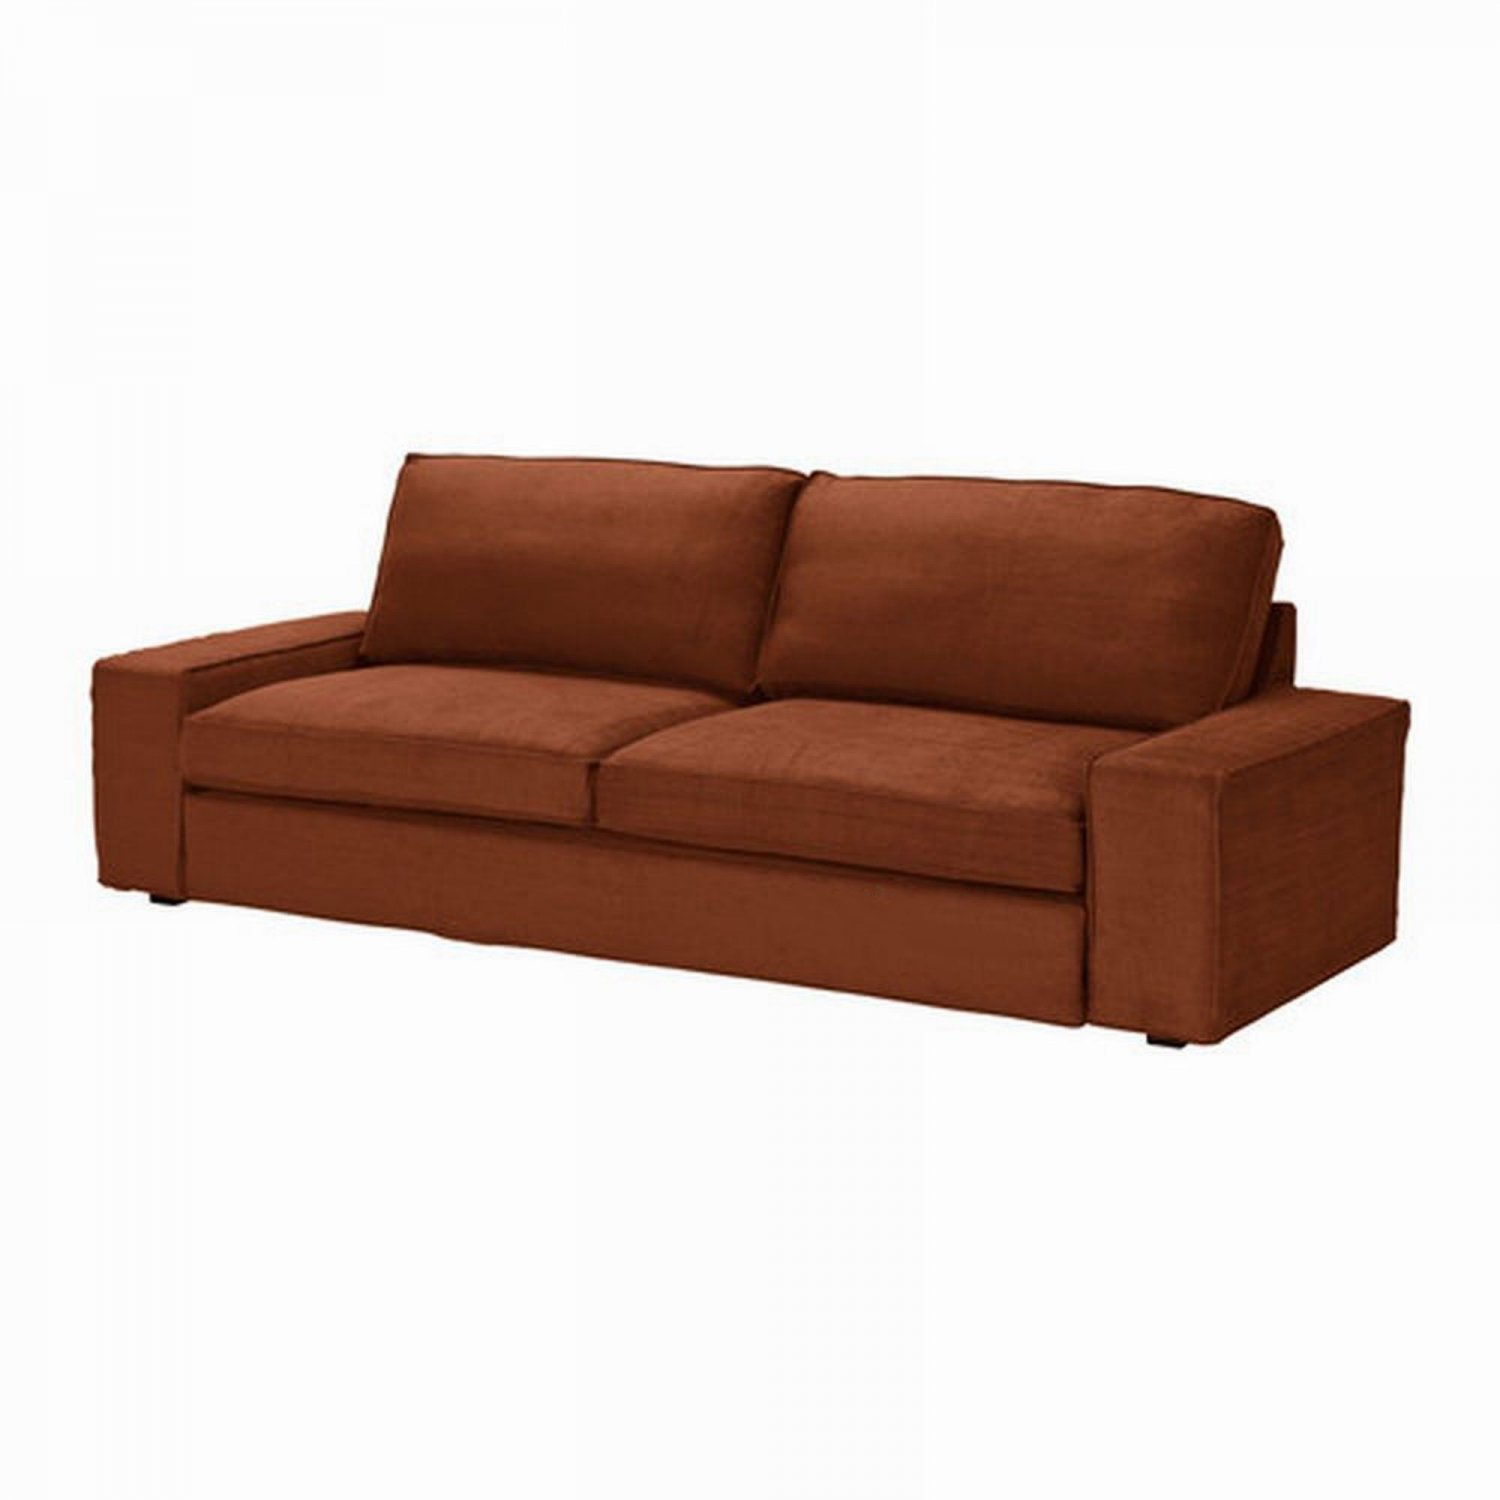 Bezug Sofa Ikea Ikea Kivik Sofa Bed Slipcover Cover Tullinge Rust Brown Bezug Housse